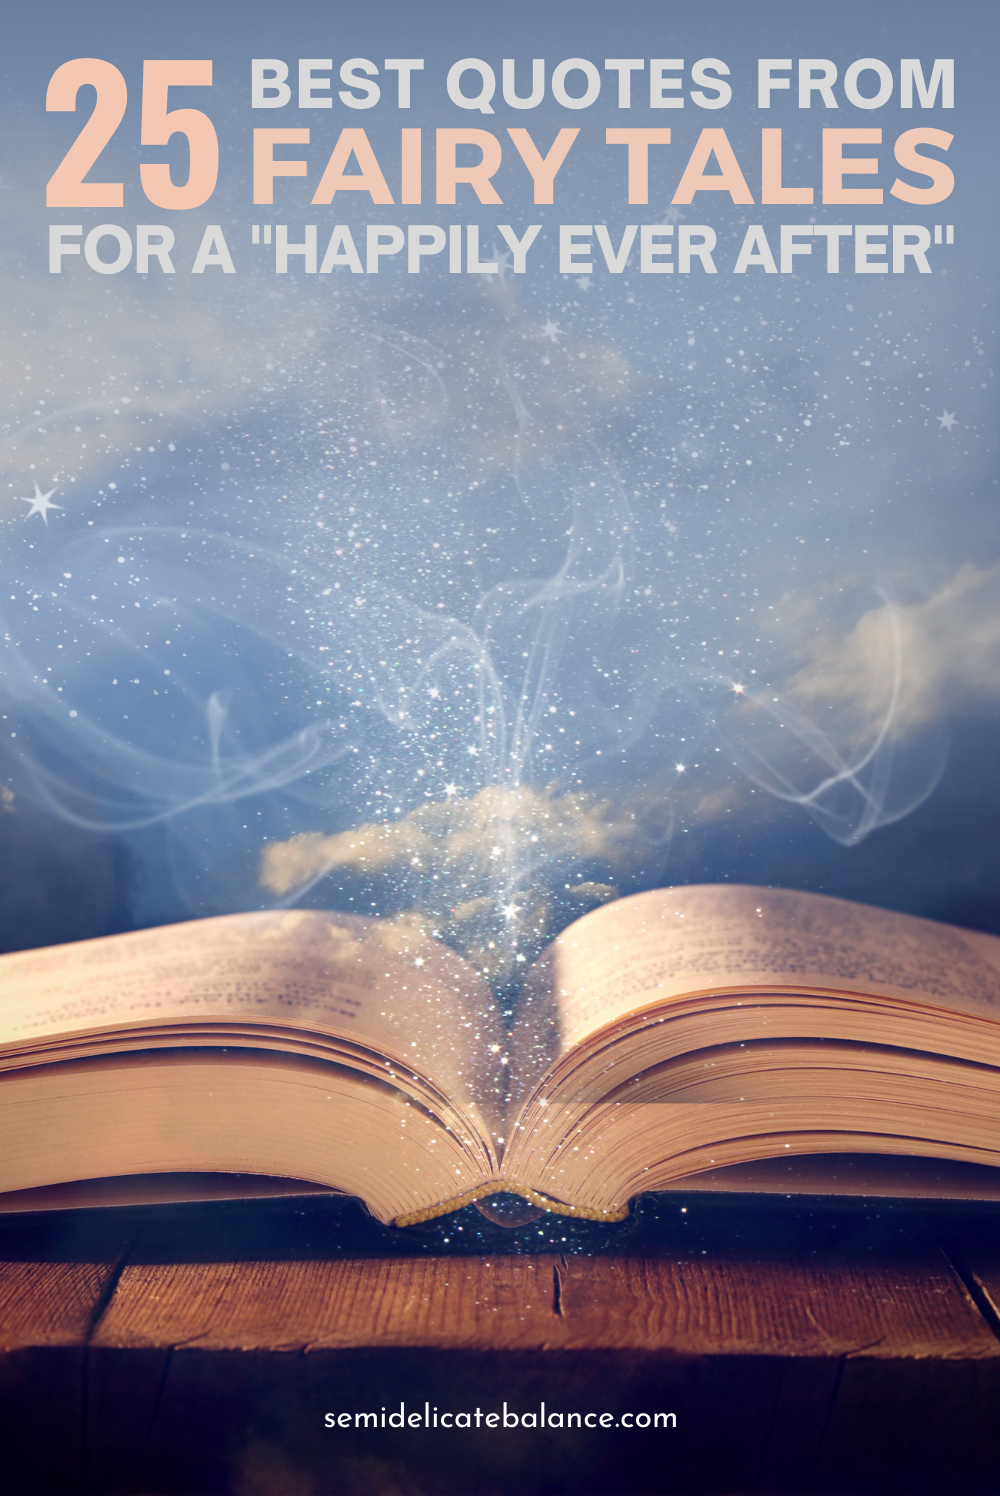 Quotes From Fairy Tales For Your Happily Ever After, Fairytale sayings